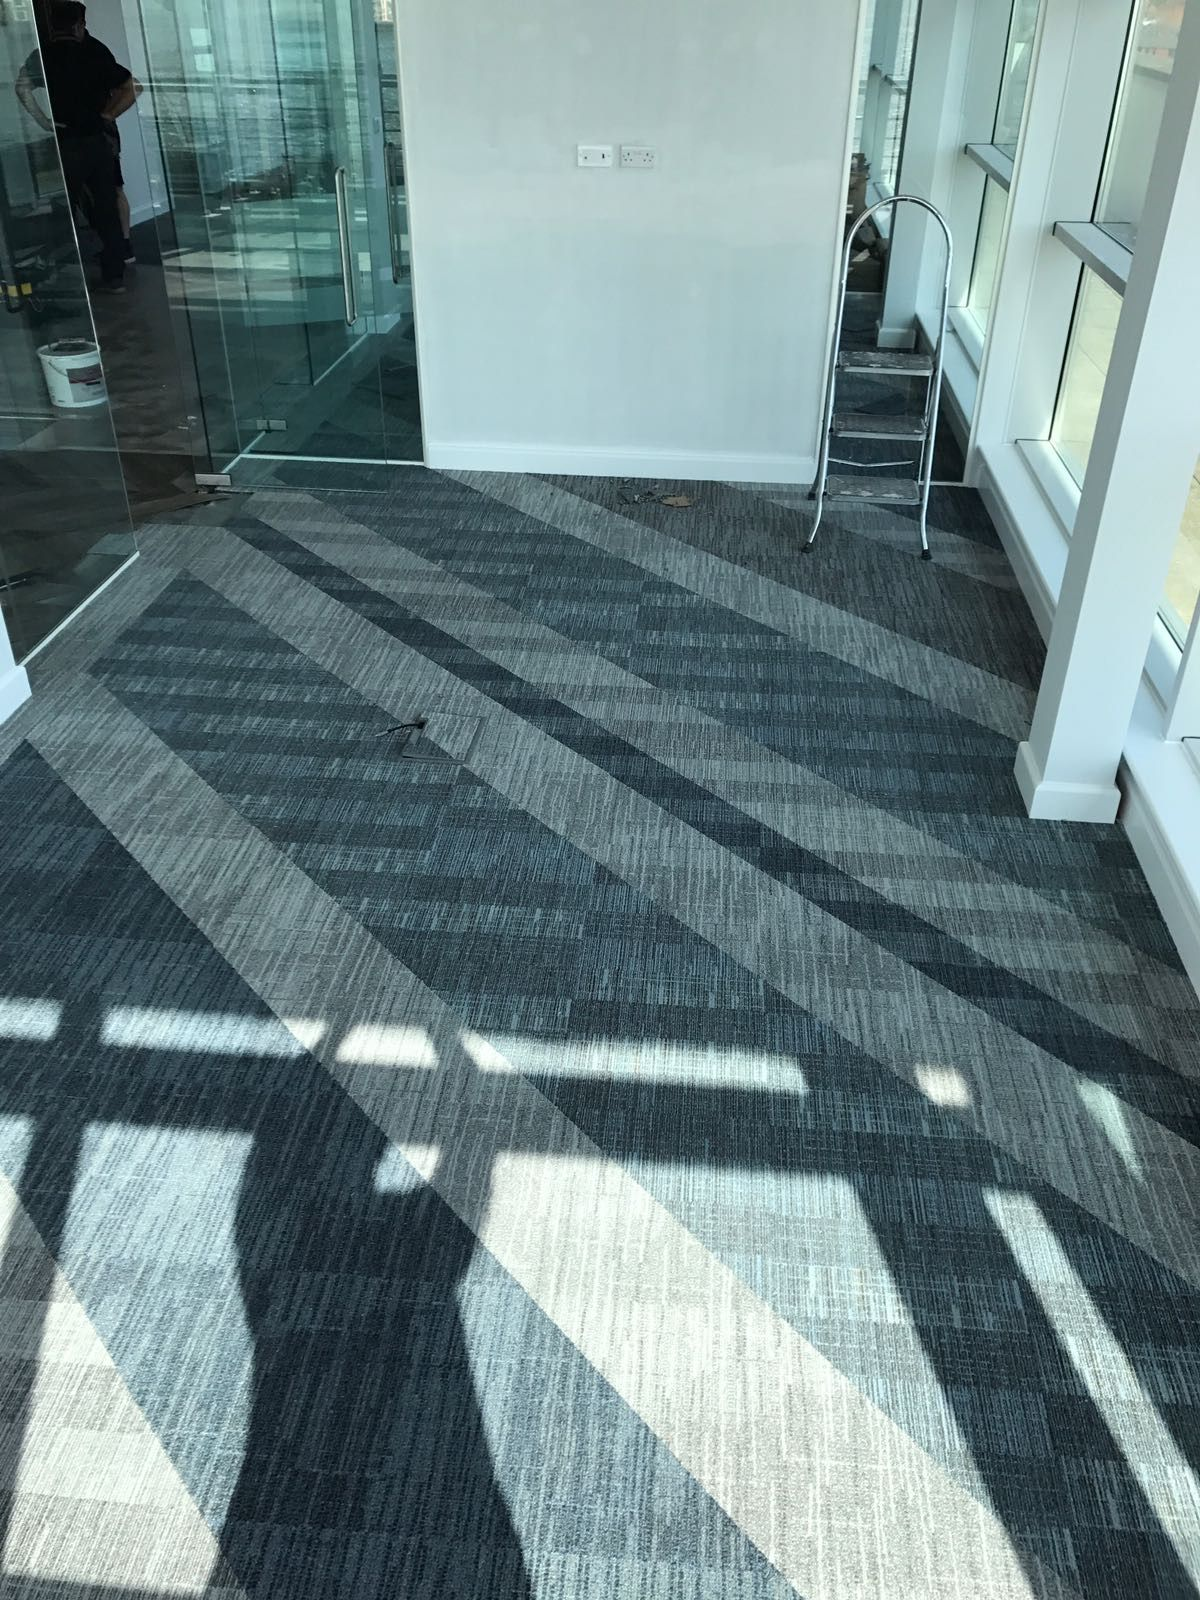 We Just Love How These Carpet Tiles Turned Out A Sea Of Blue And Grey Carpet Tiles Feature In This Comm Carpet Tiles Stair Runner Carpet Flooring Inspiration